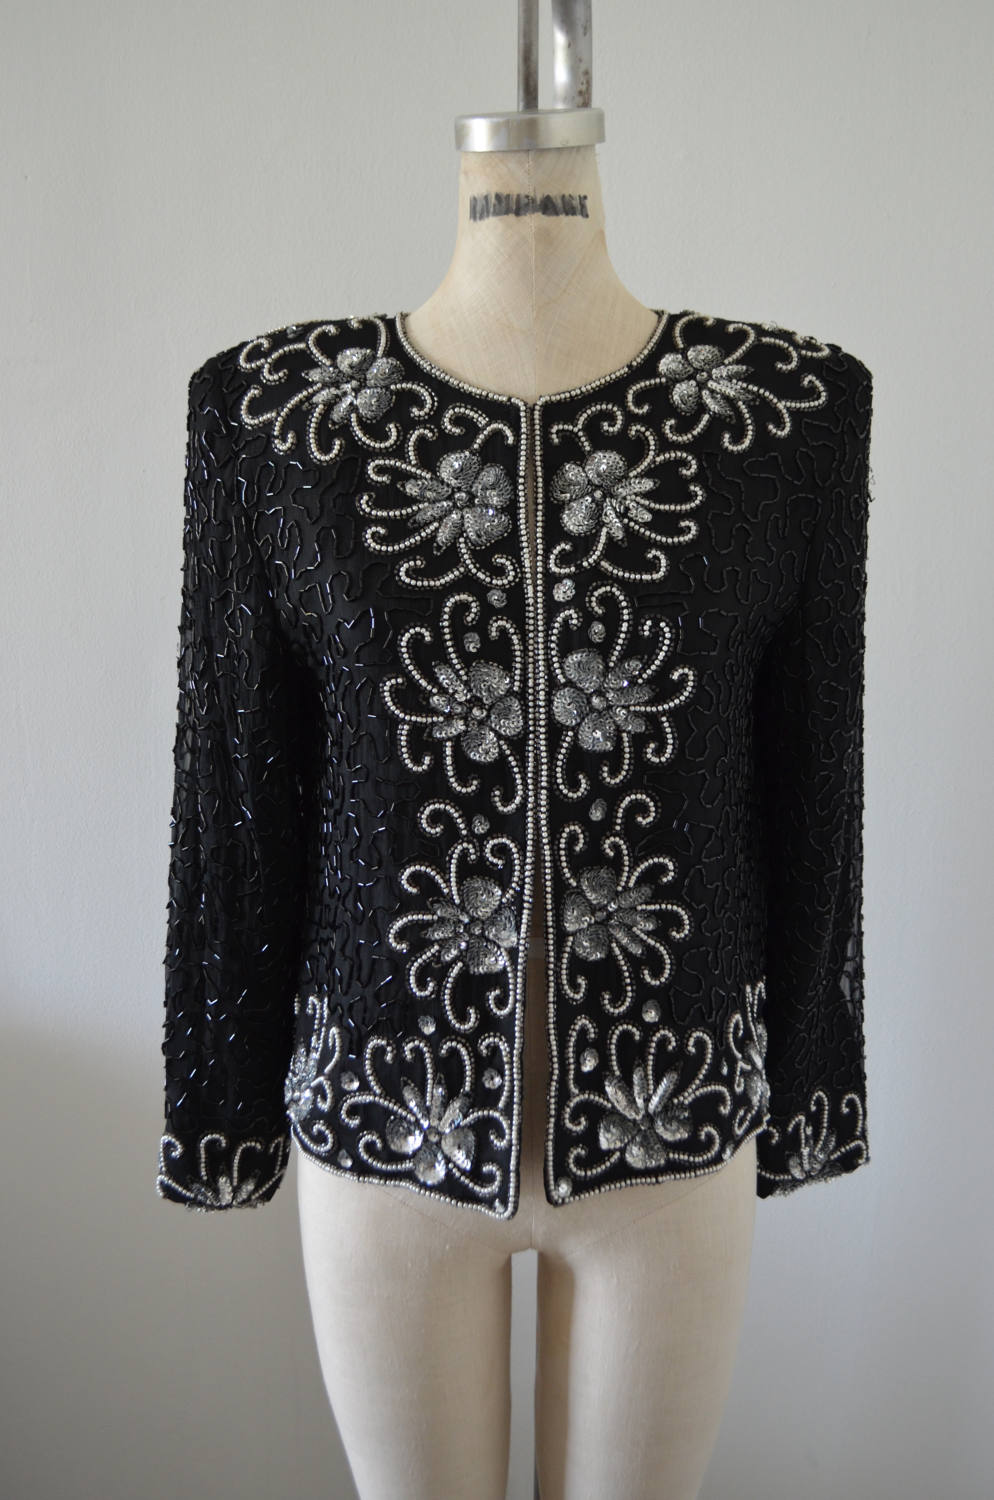 Floral Sequined Beaded Cropped Jacket Floral Cocktail Wedding Nye Party Holiday Glam